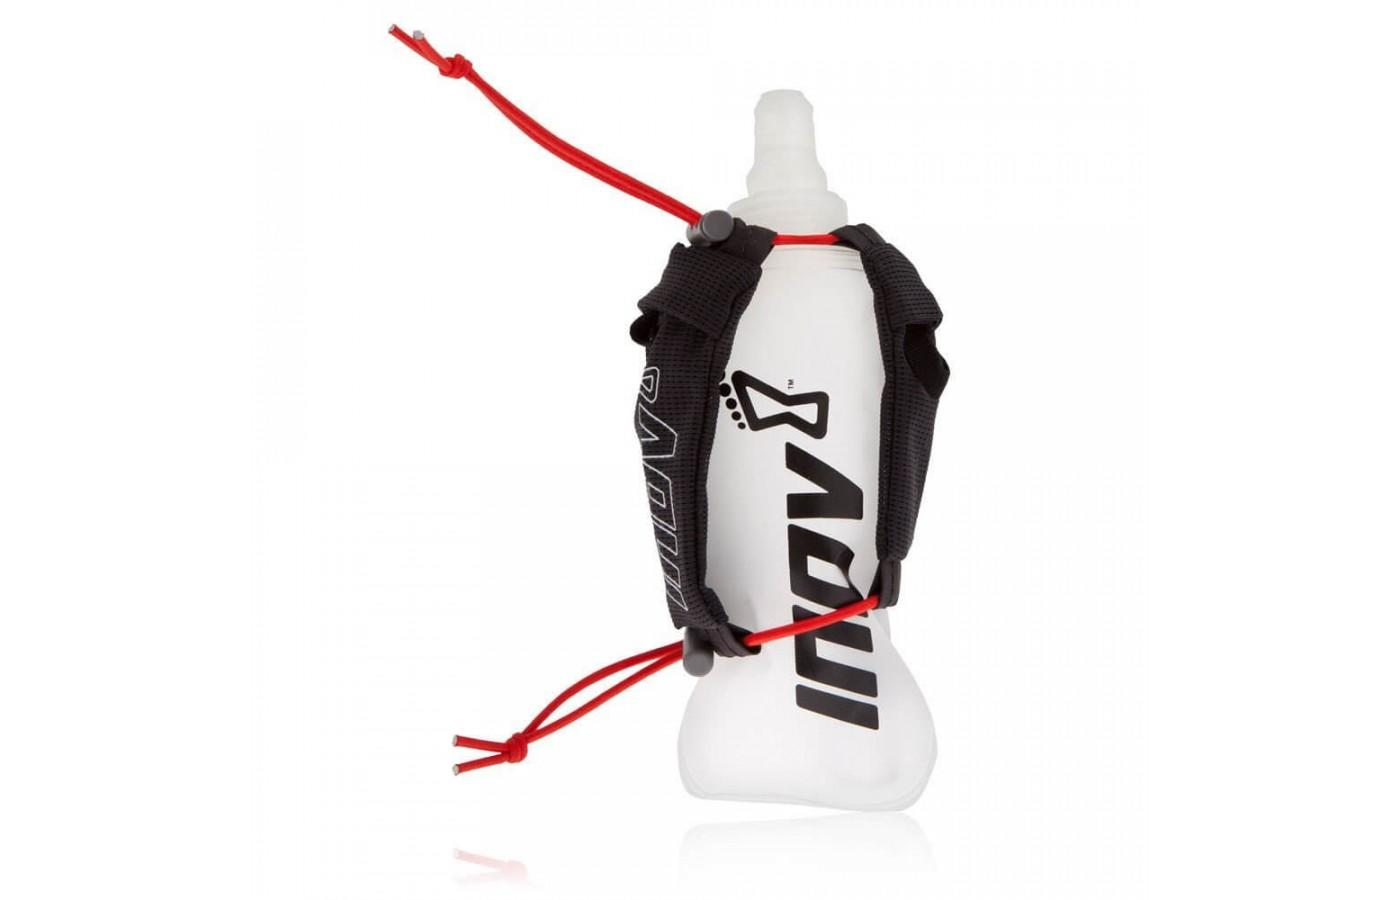 The Inov-8 Race Ultra Handheld Bottle is available in two sizes 250mL and 500mL